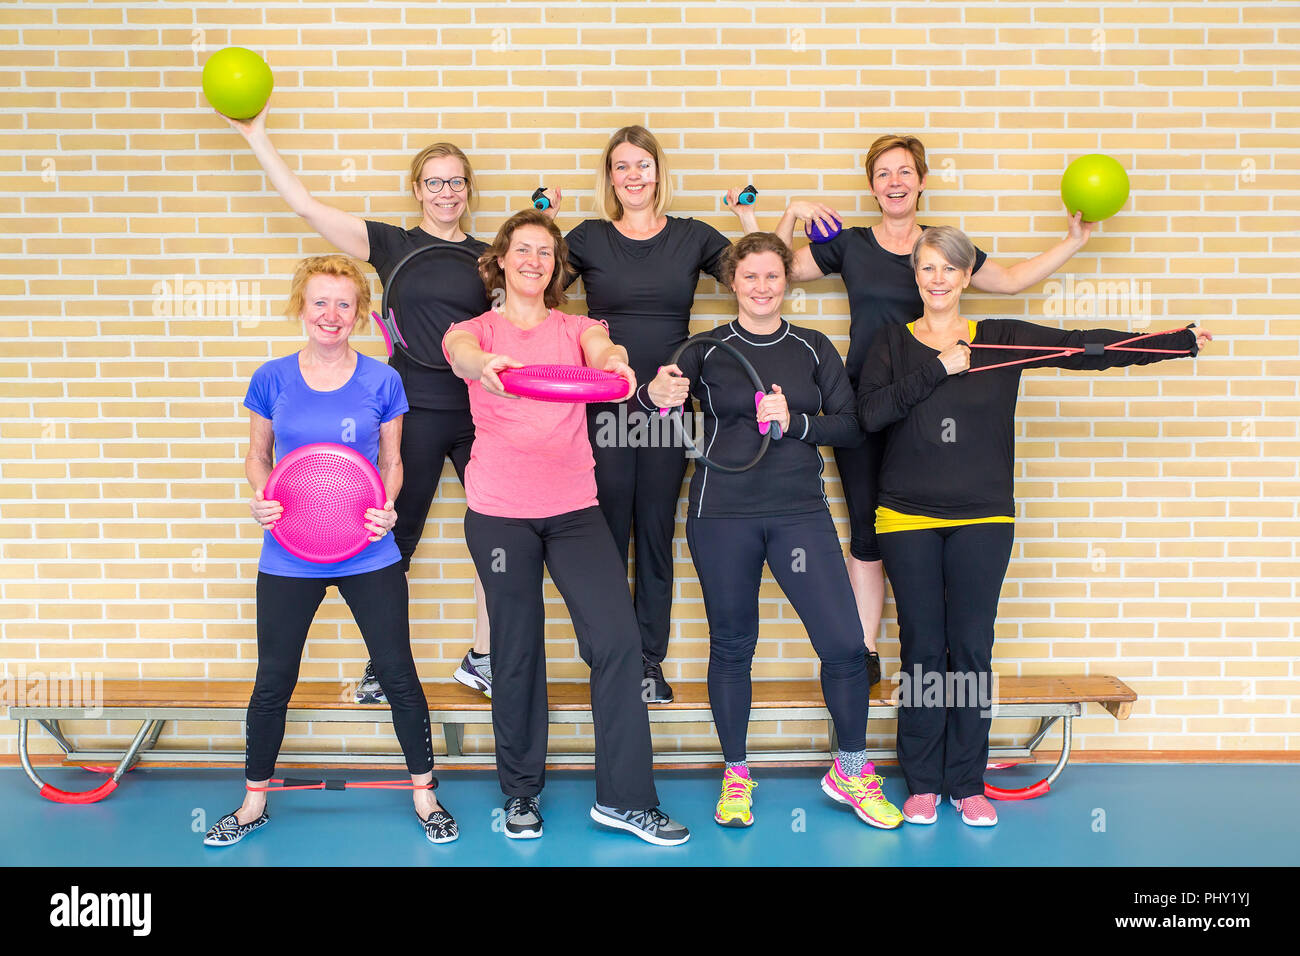 Group photo dutch women gym class with sport equipment Stock Photo